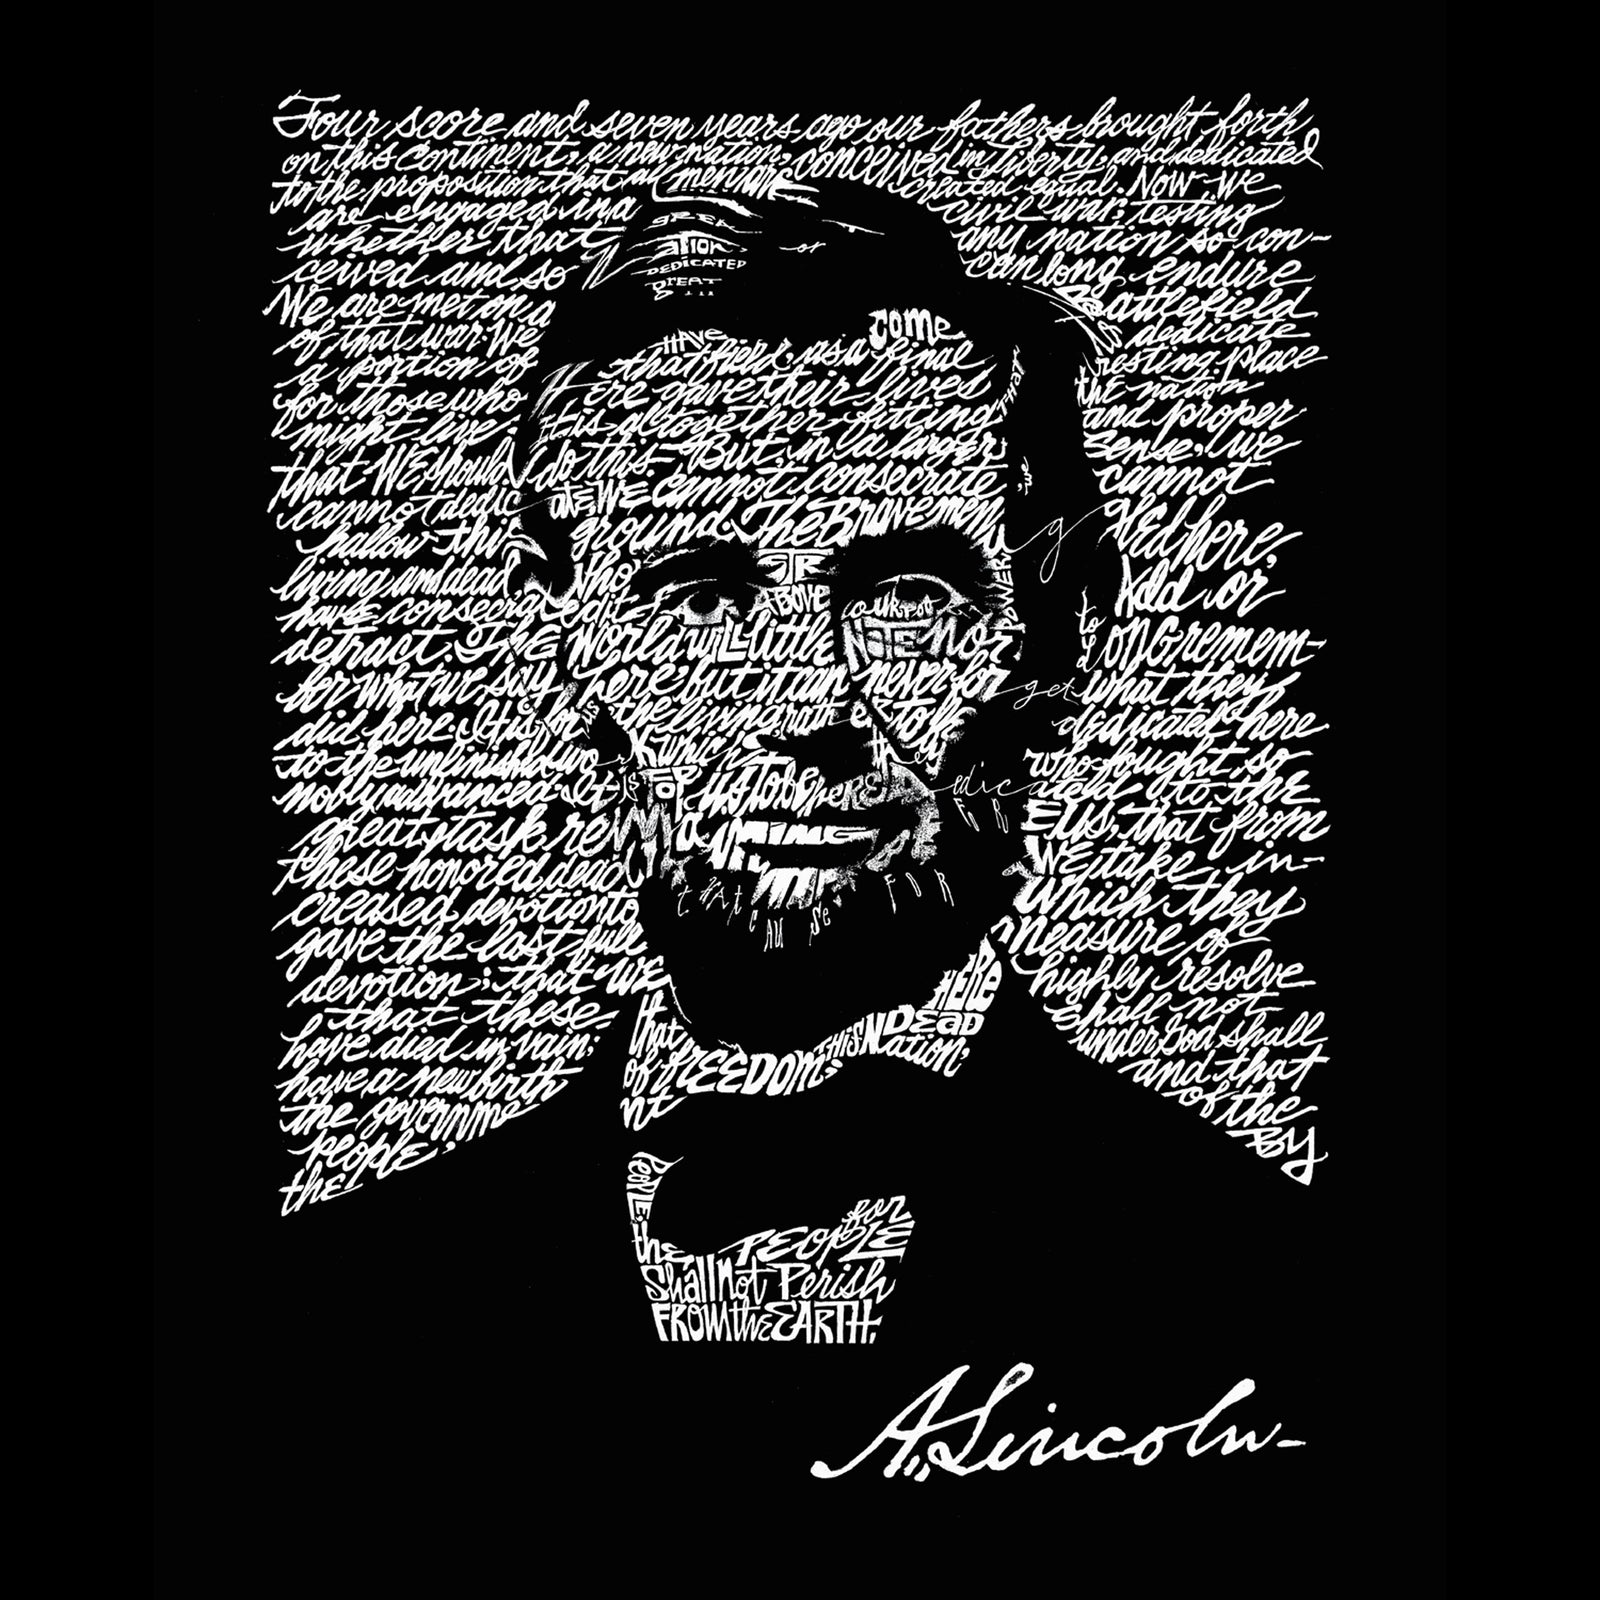 Women's Loose Fit Dolman Cut Word Art Shirt - ABRAHAM LINCOLN - GETTYSBURG ADDRESS